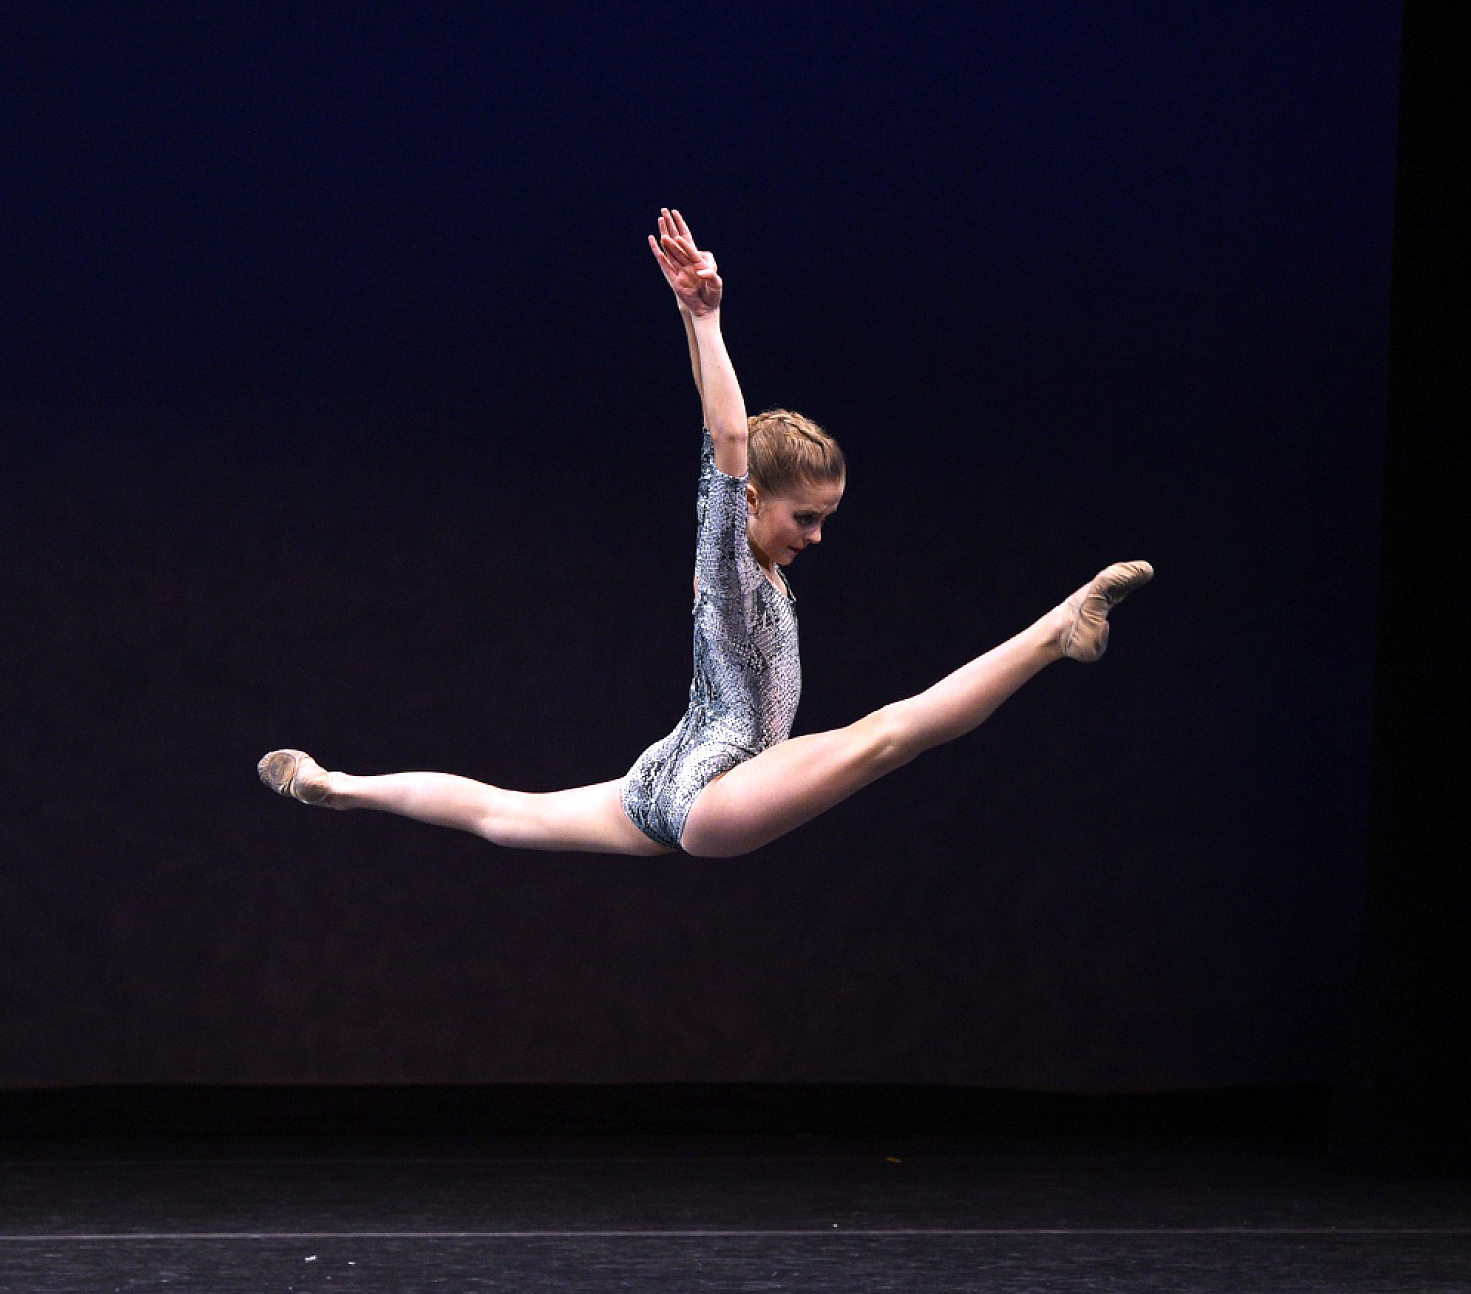 Olivia Bevilacqua performing a contemporary dance. Provided photo